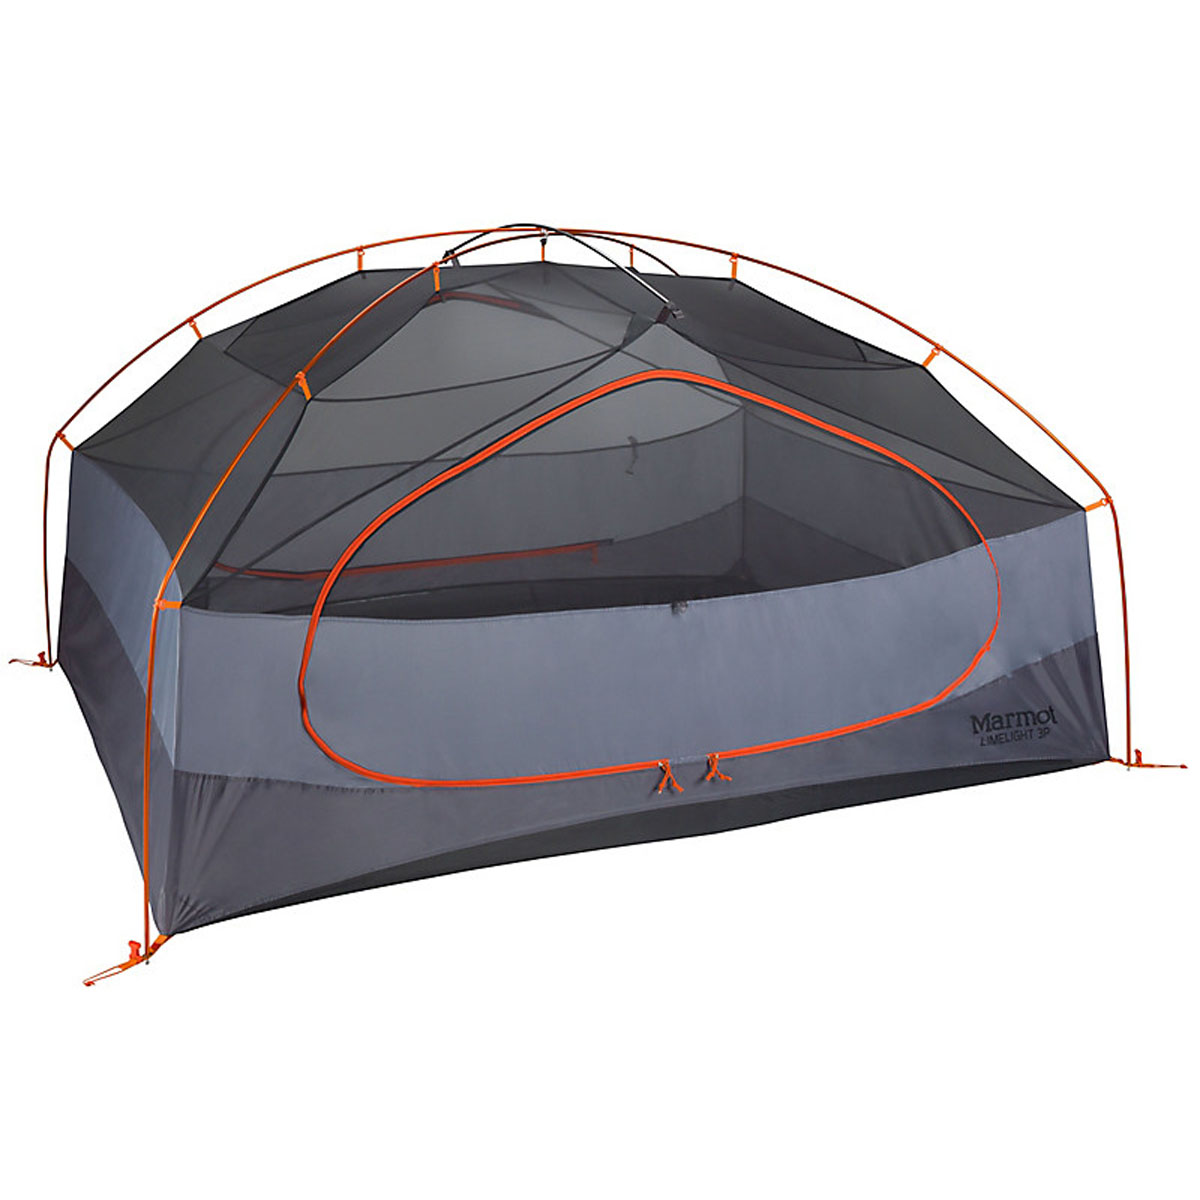 Large Camping Tents Buyers Guide